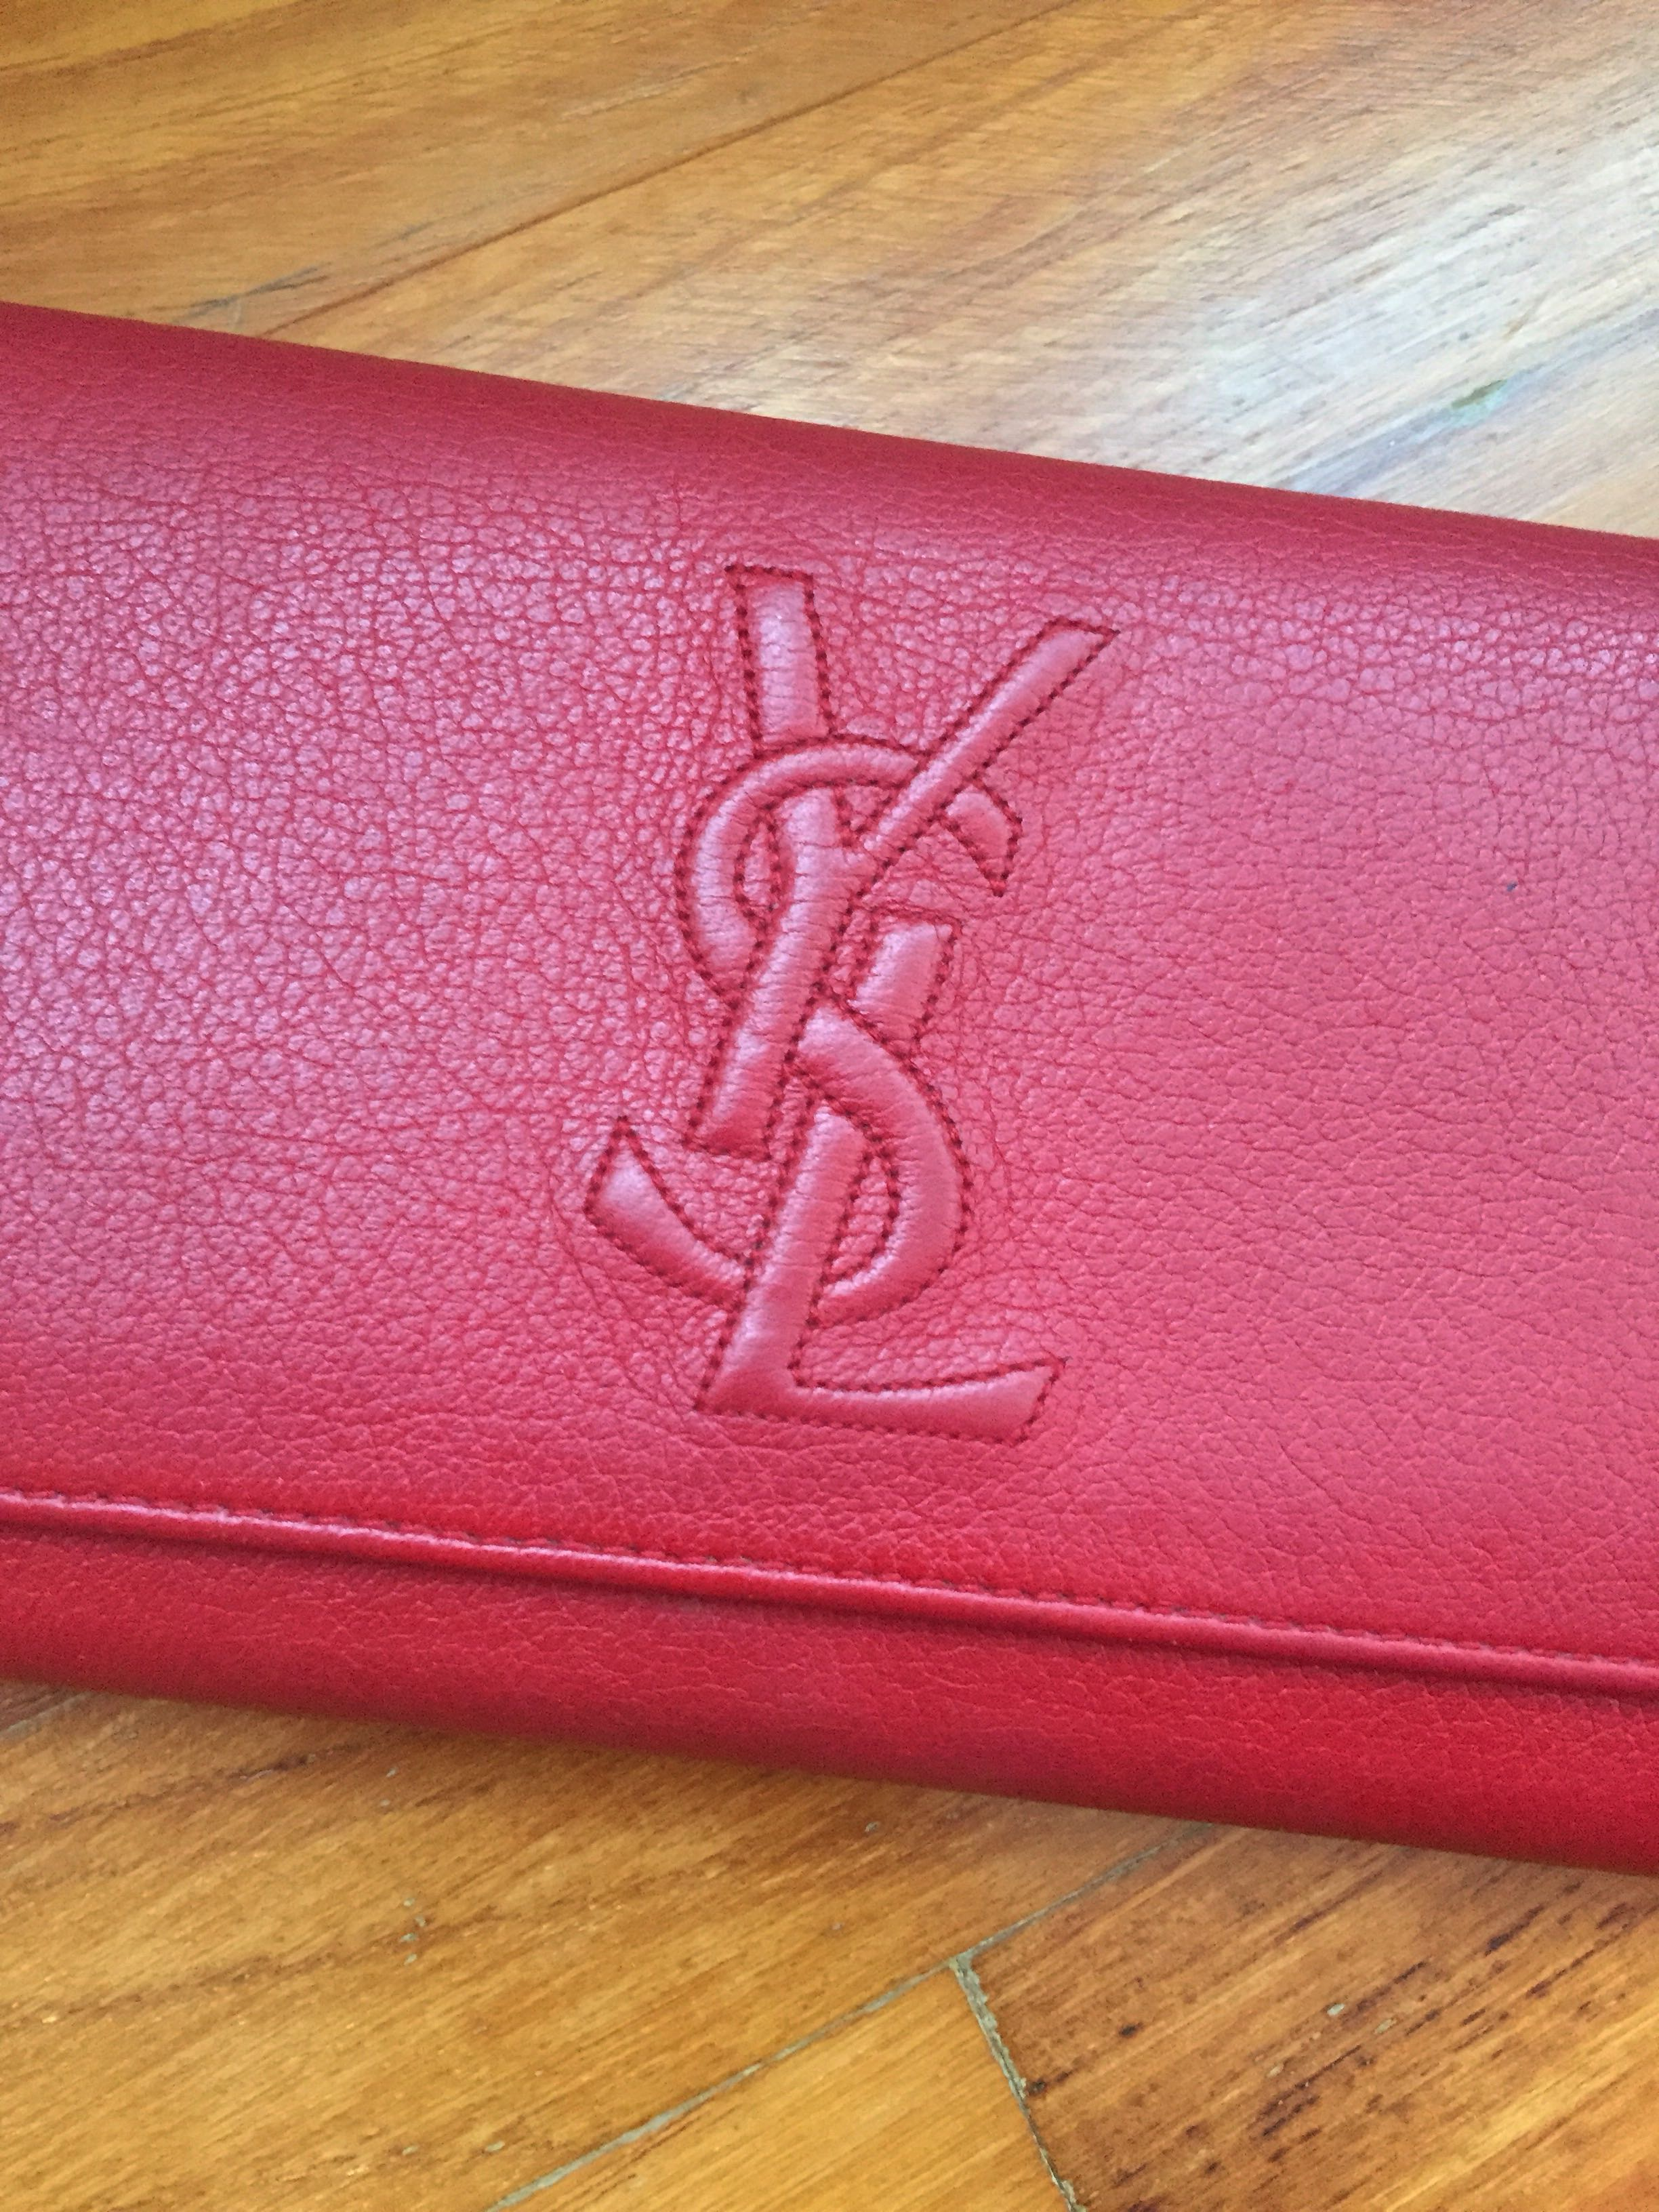 41b45ef8348 YSL SAINT LAURENT - Red Calf Skin Long Wallet Authentic, Luxury, Bags &  Wallets, Wallets on Carousell